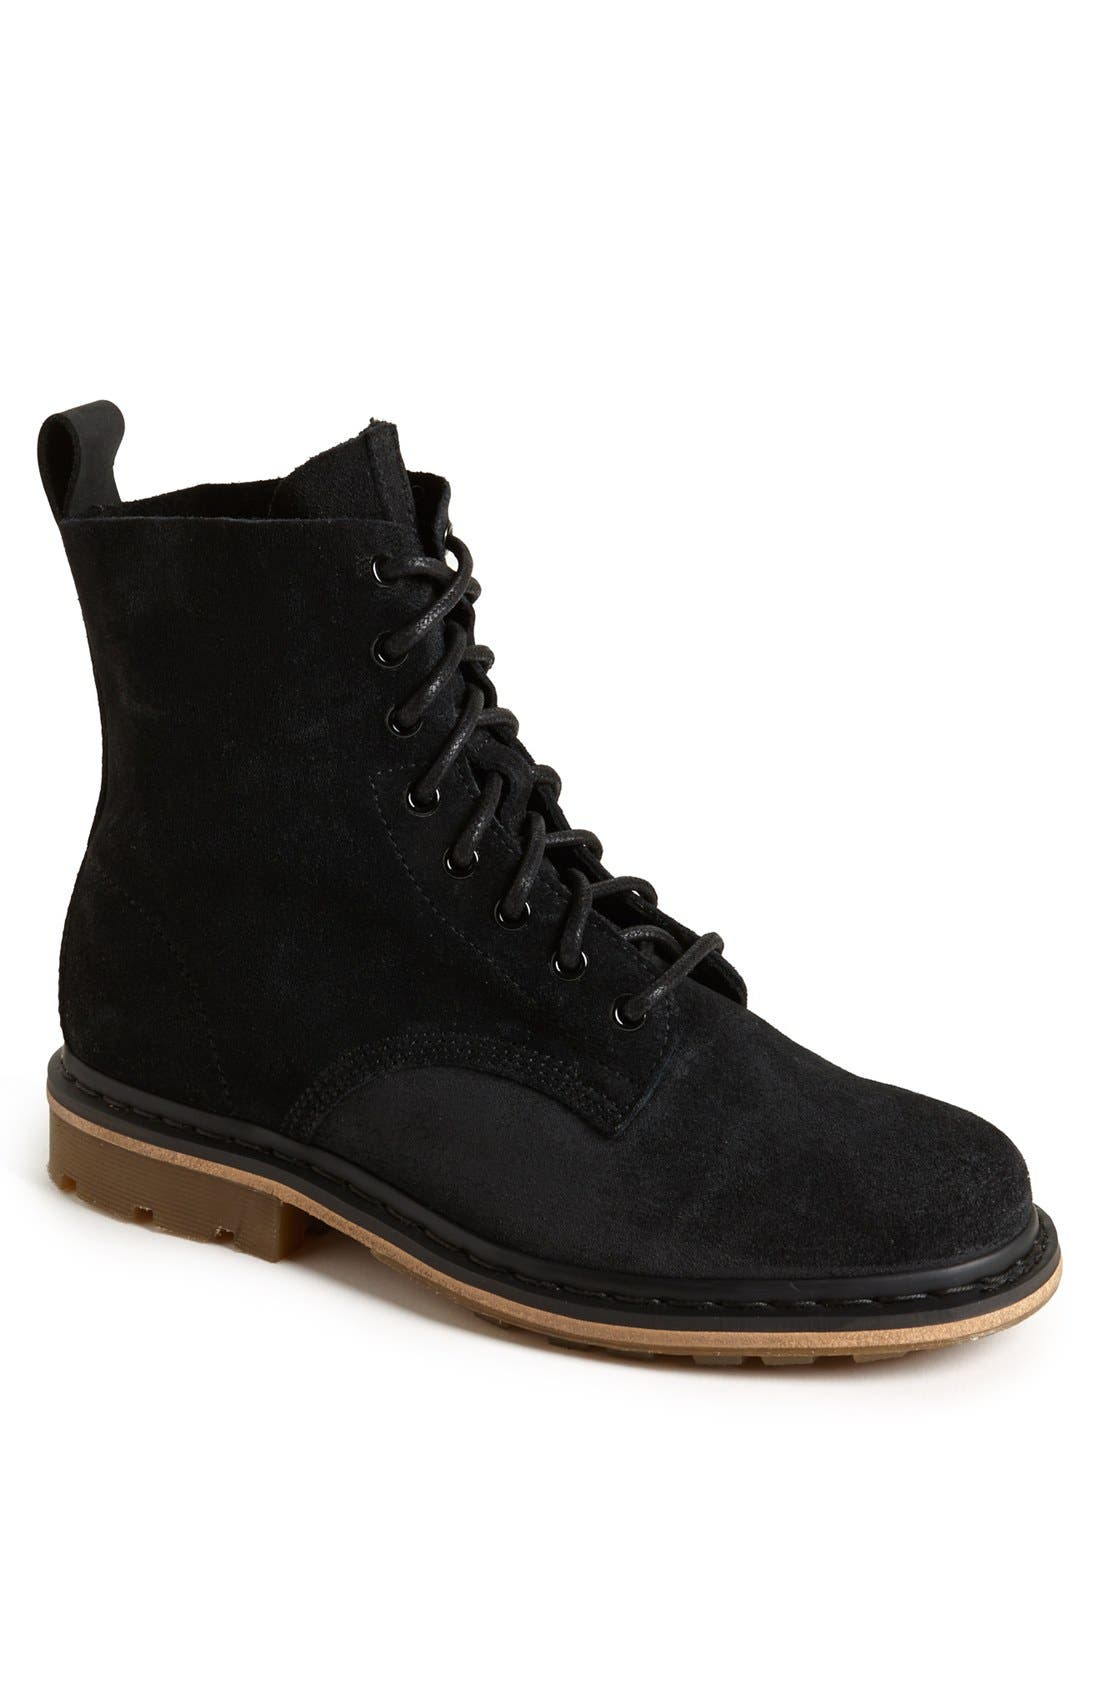 Alternate Image 1 Selected - Dr. Martens 'Nero' Suede Boot